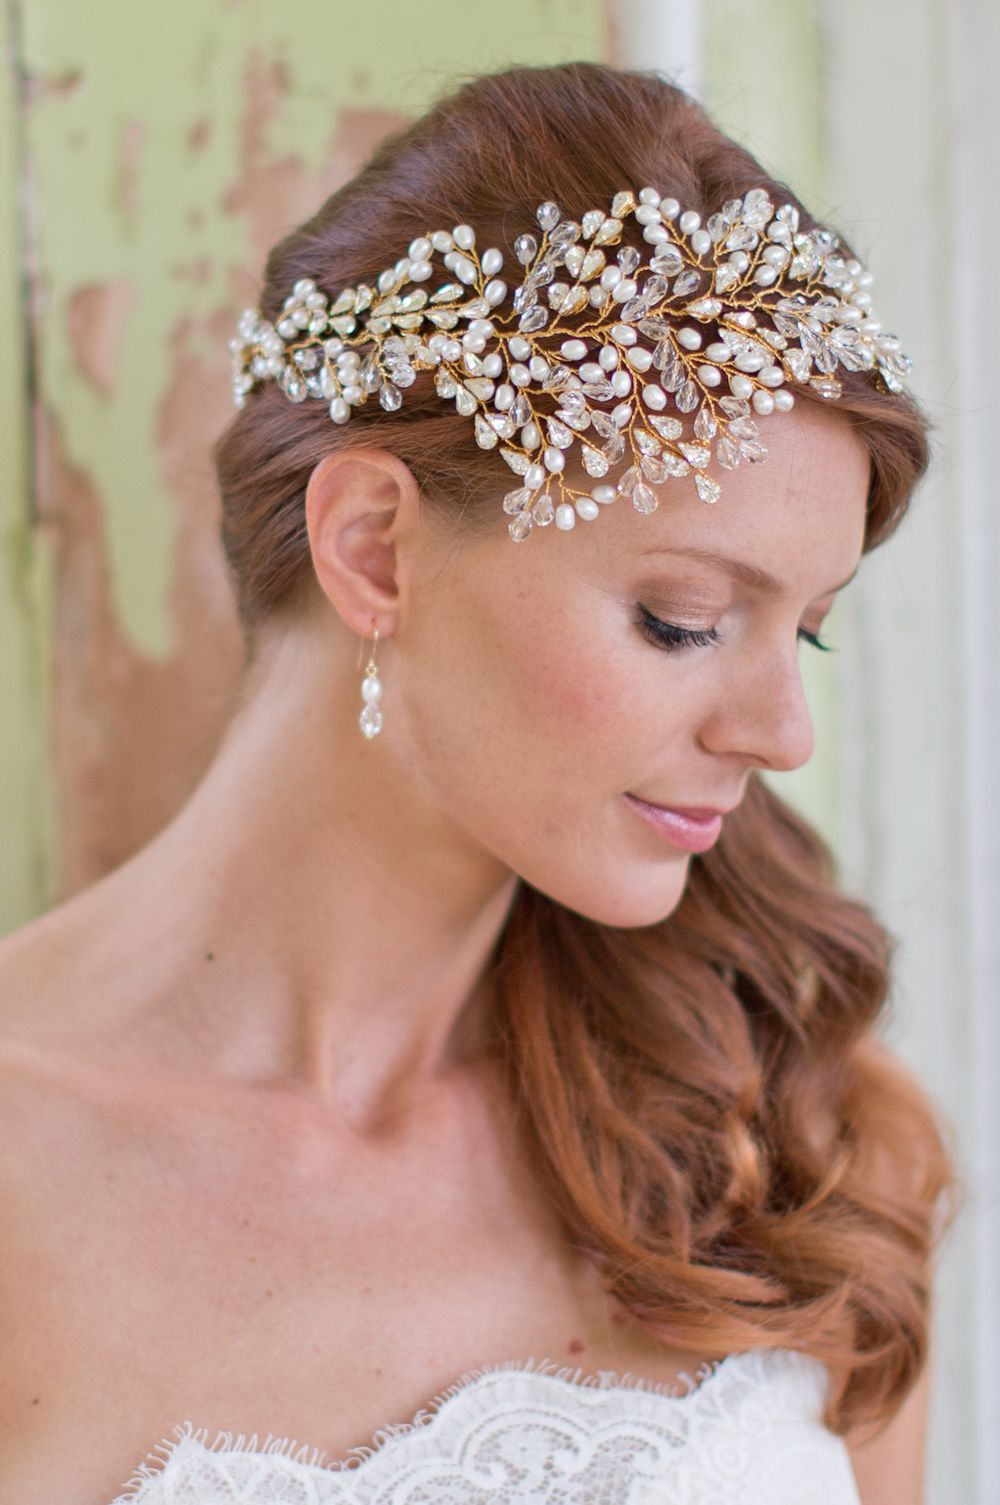 Hermione Harbutt Leafy Glamour Headdress. Pearl and Swarovski crystal leaves branch from the top of the head and sweep round to the back. Perfect with hair worn to the side. Image by Catherine Mead.